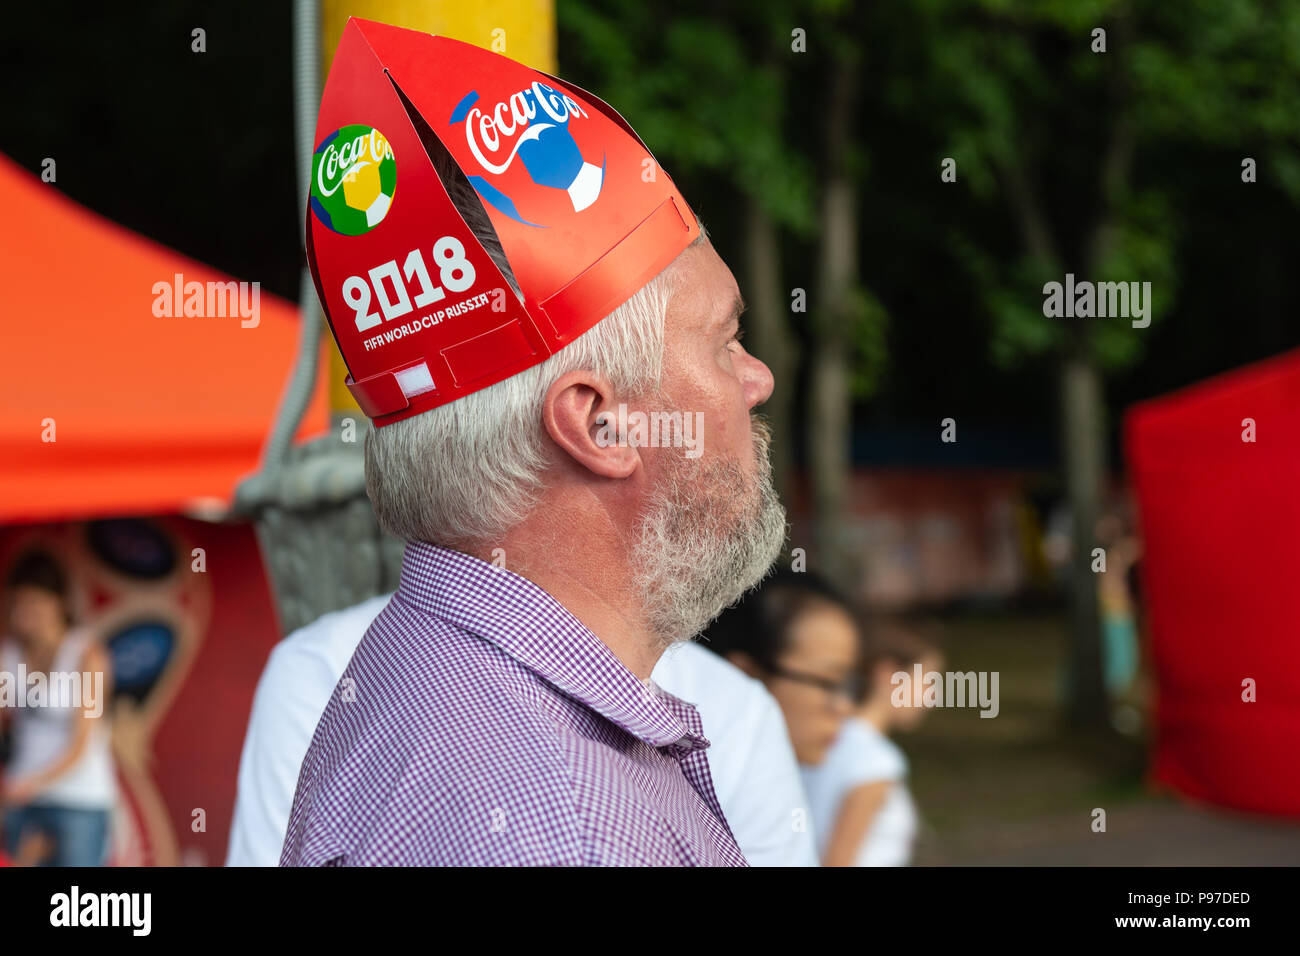 Moscow, Russia. 15th July, 2018. FIFA World Cup France-Croatia final. Fan festival area on Sparrow Hills by the Moscow State University. Area's capacity of 25000 people was exceeded manifold. There is barely room to move. Thunderstorm weather. Credit: Alex's Pictures/Alamy Live News Stock Photo